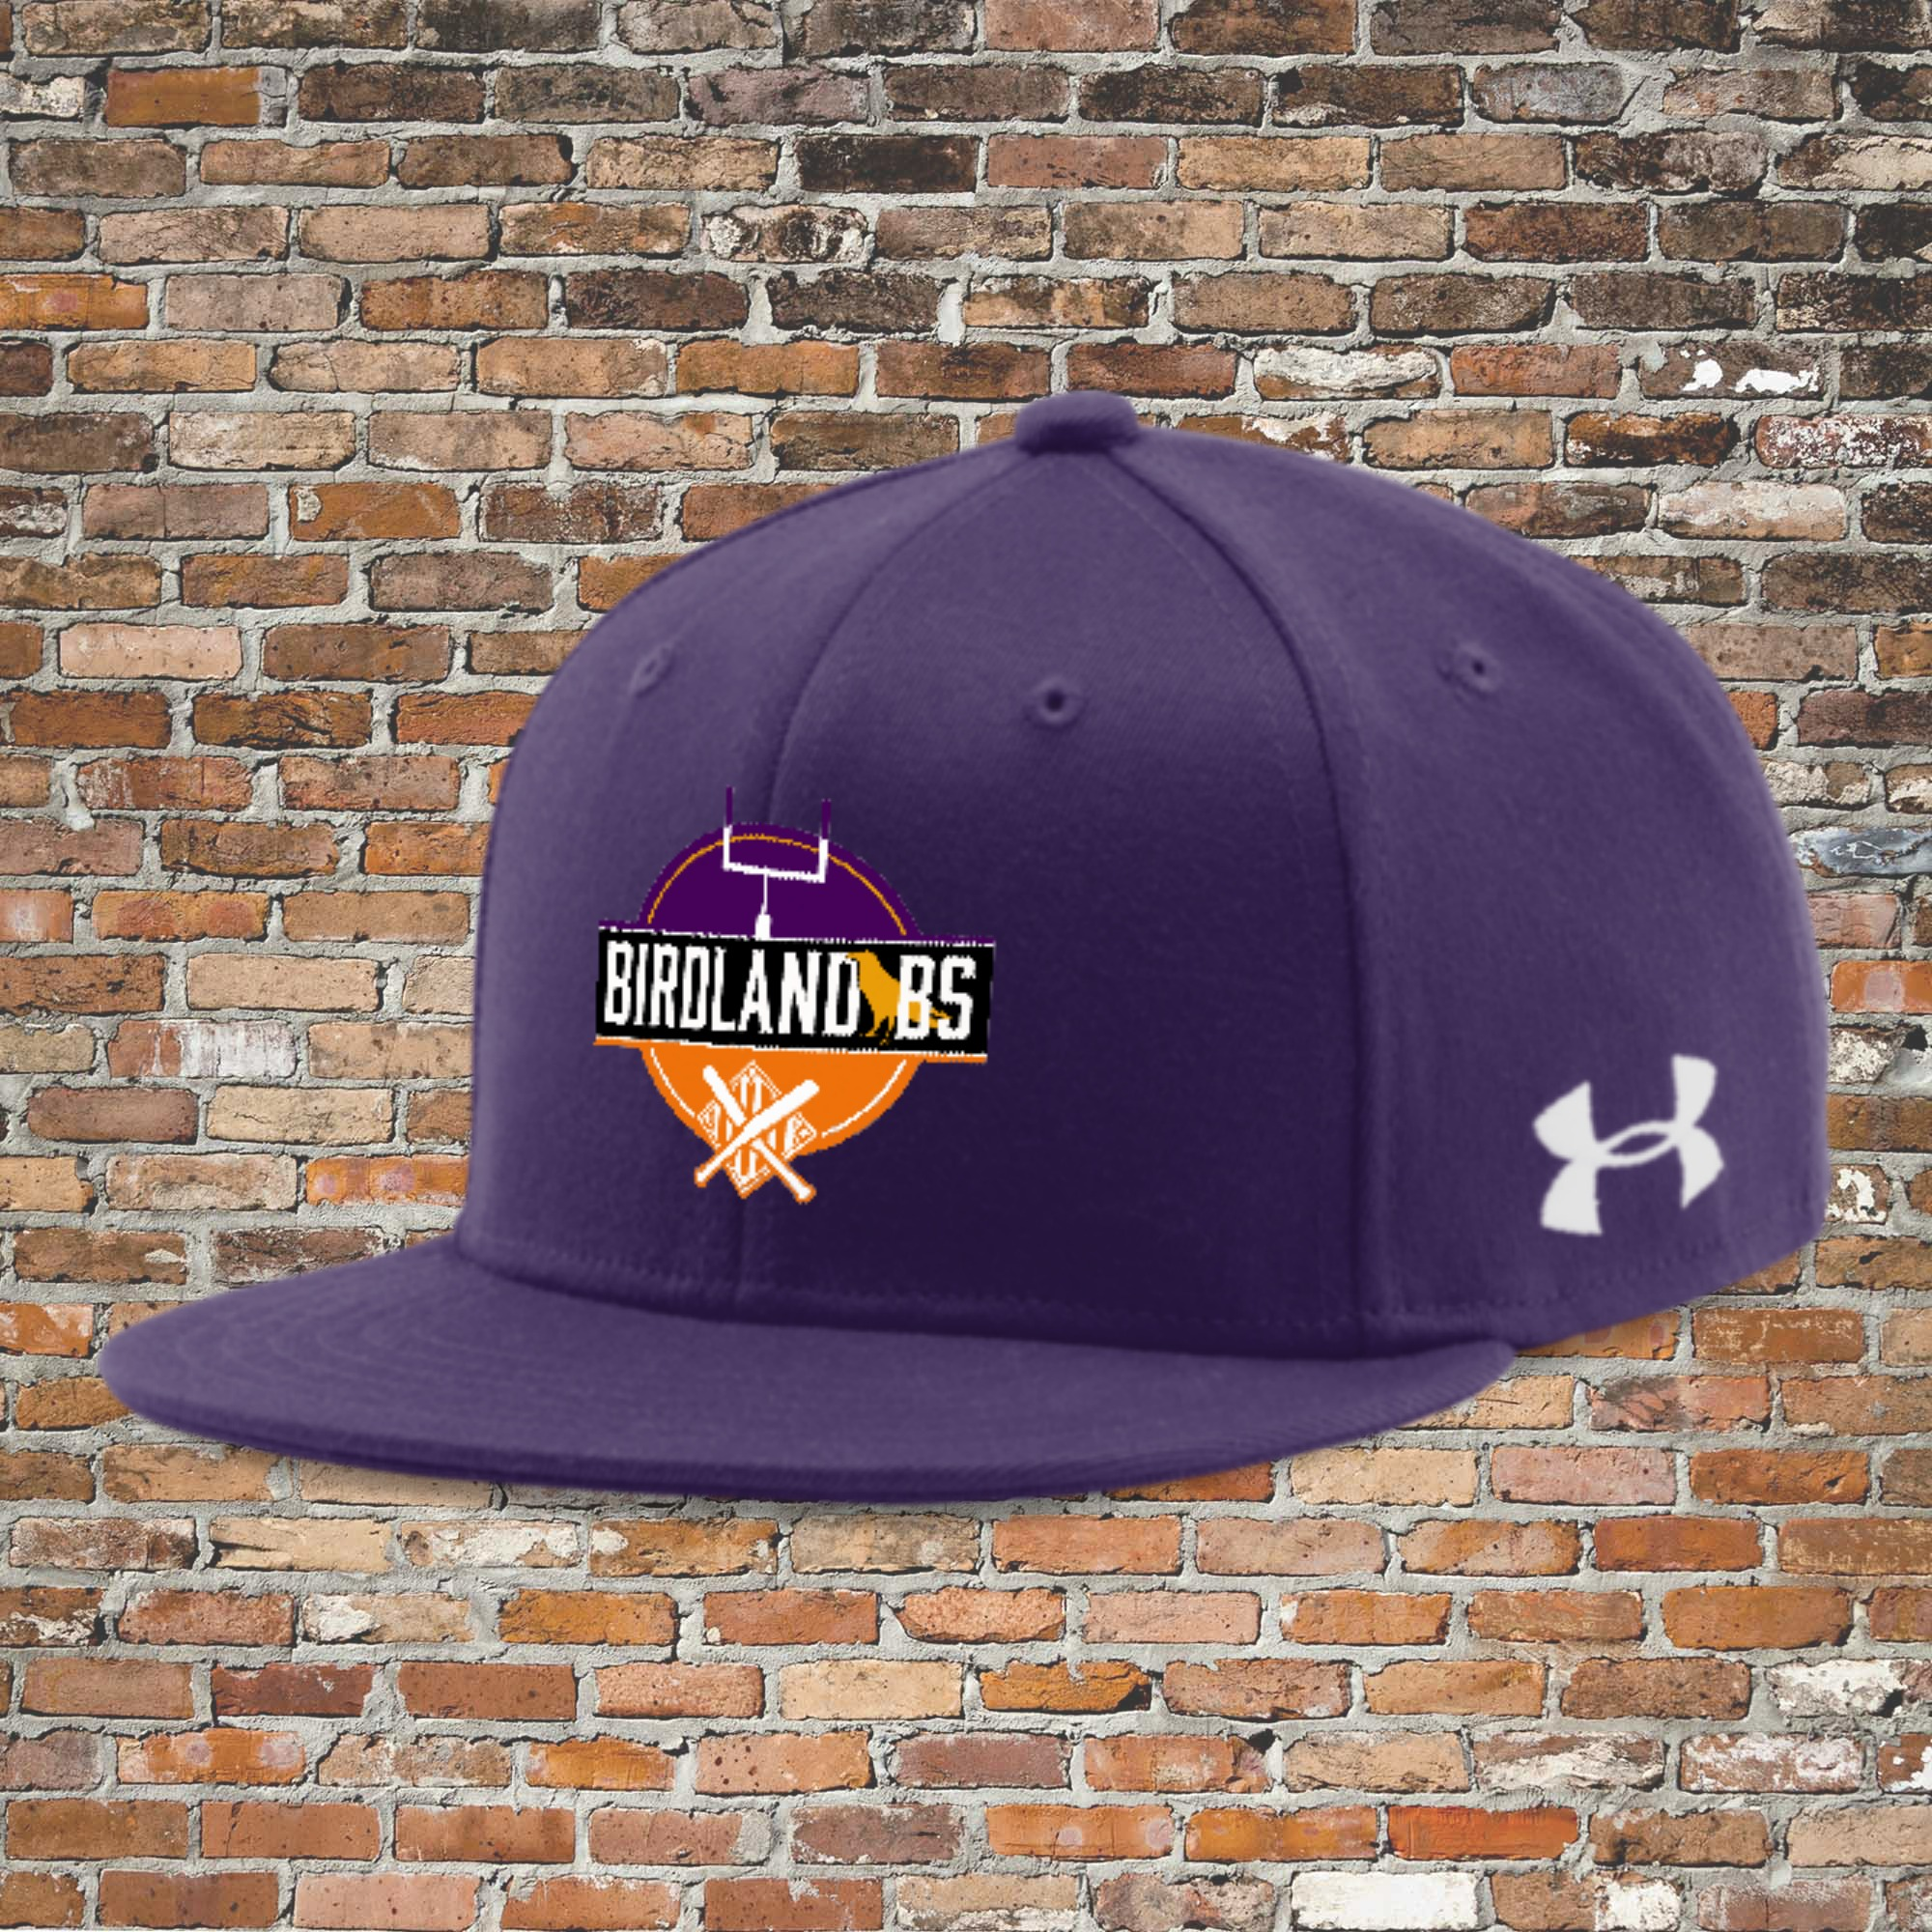 Under Armour Flat Bill Cap - Solid (Purple): Click for Special Pricing